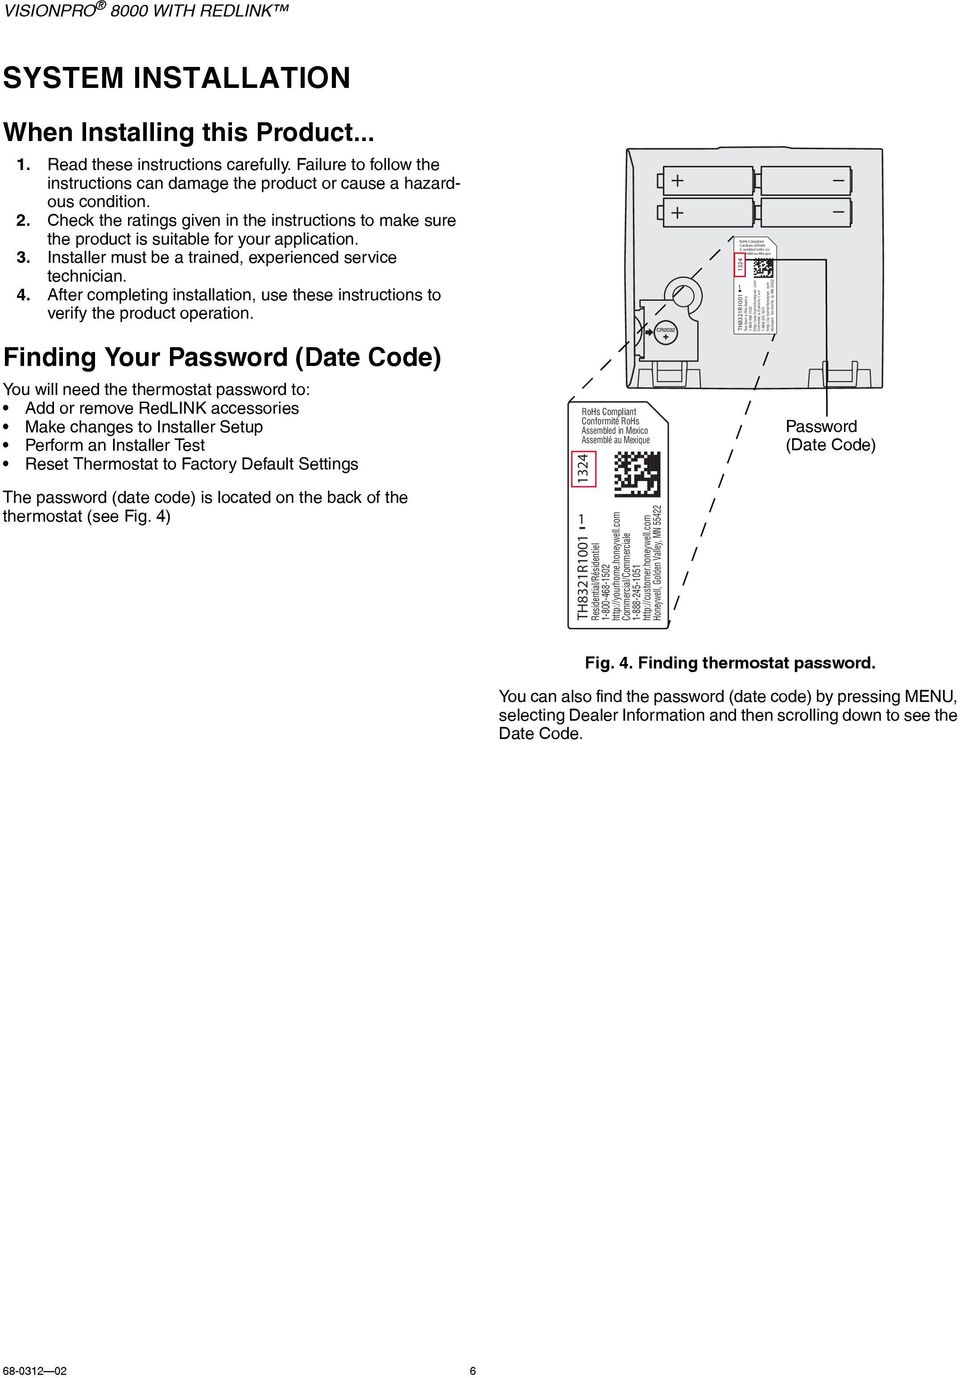 Th8321r1001 Reset Honeywell Vision Pro 8000 Wiring Diagram Visionpro With Redlink Pdf